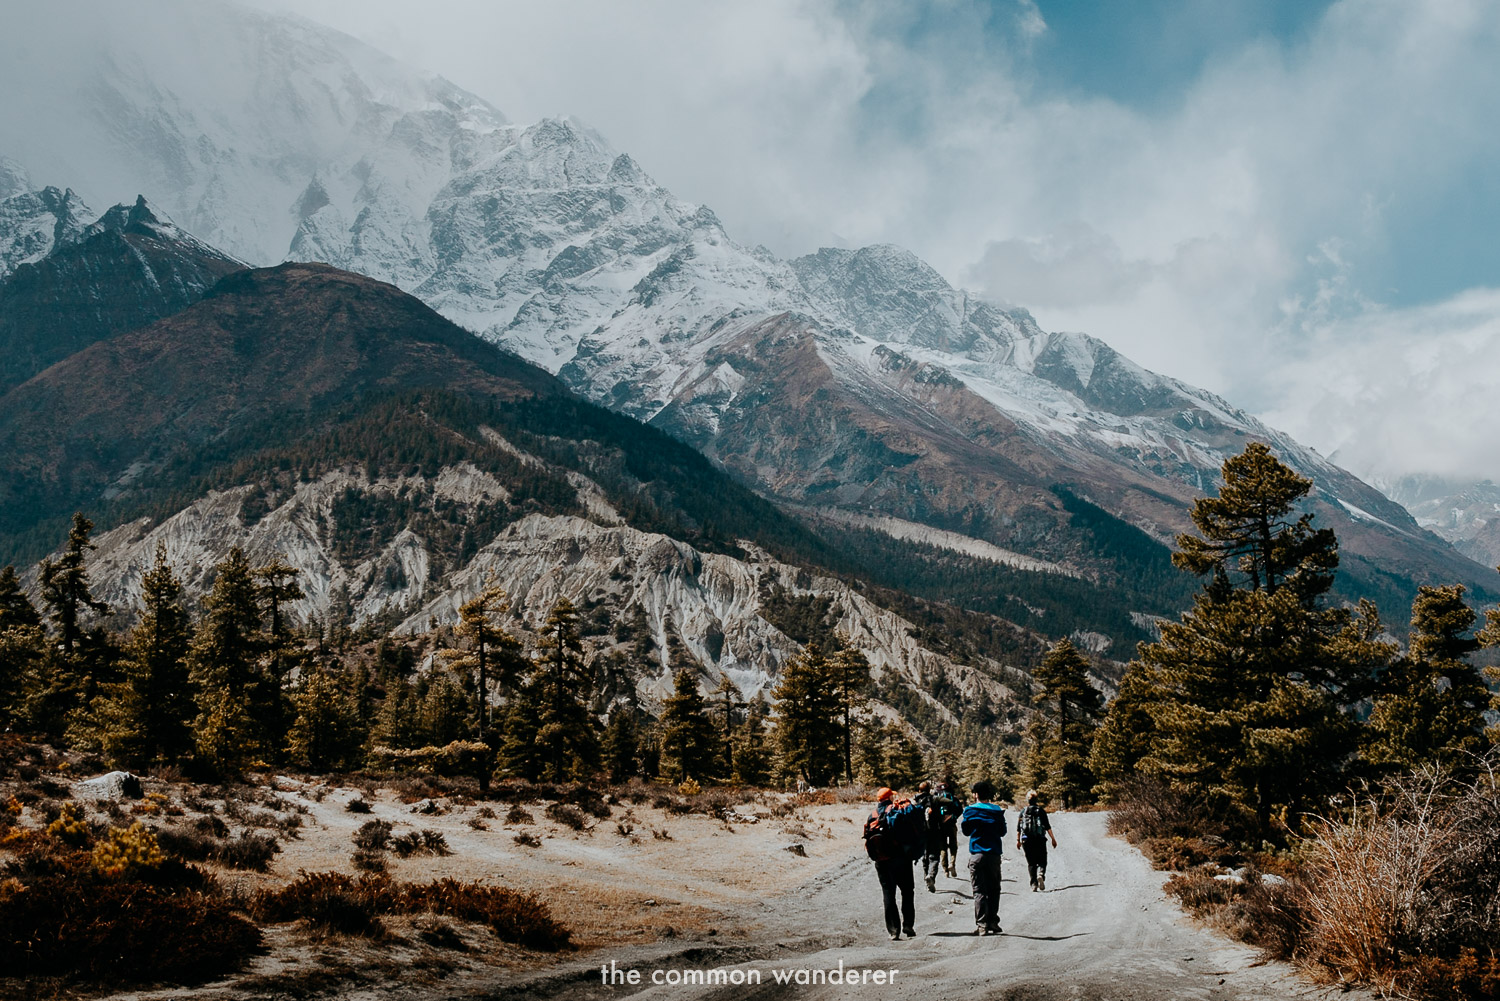 A group hikes along the Annapurna Circuit, Nepal